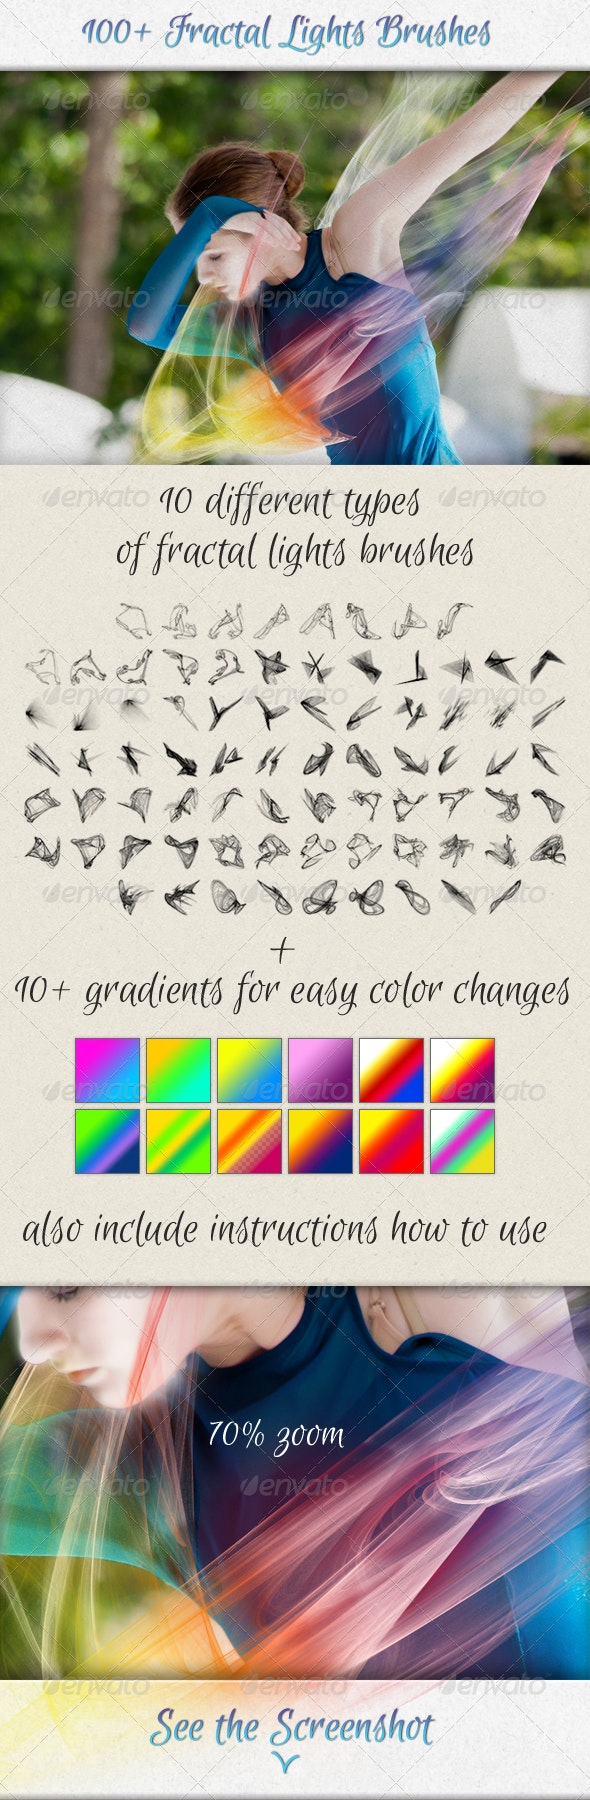 100+ Fractal Lights Brushes for Visual Effects - Abstract Brushes